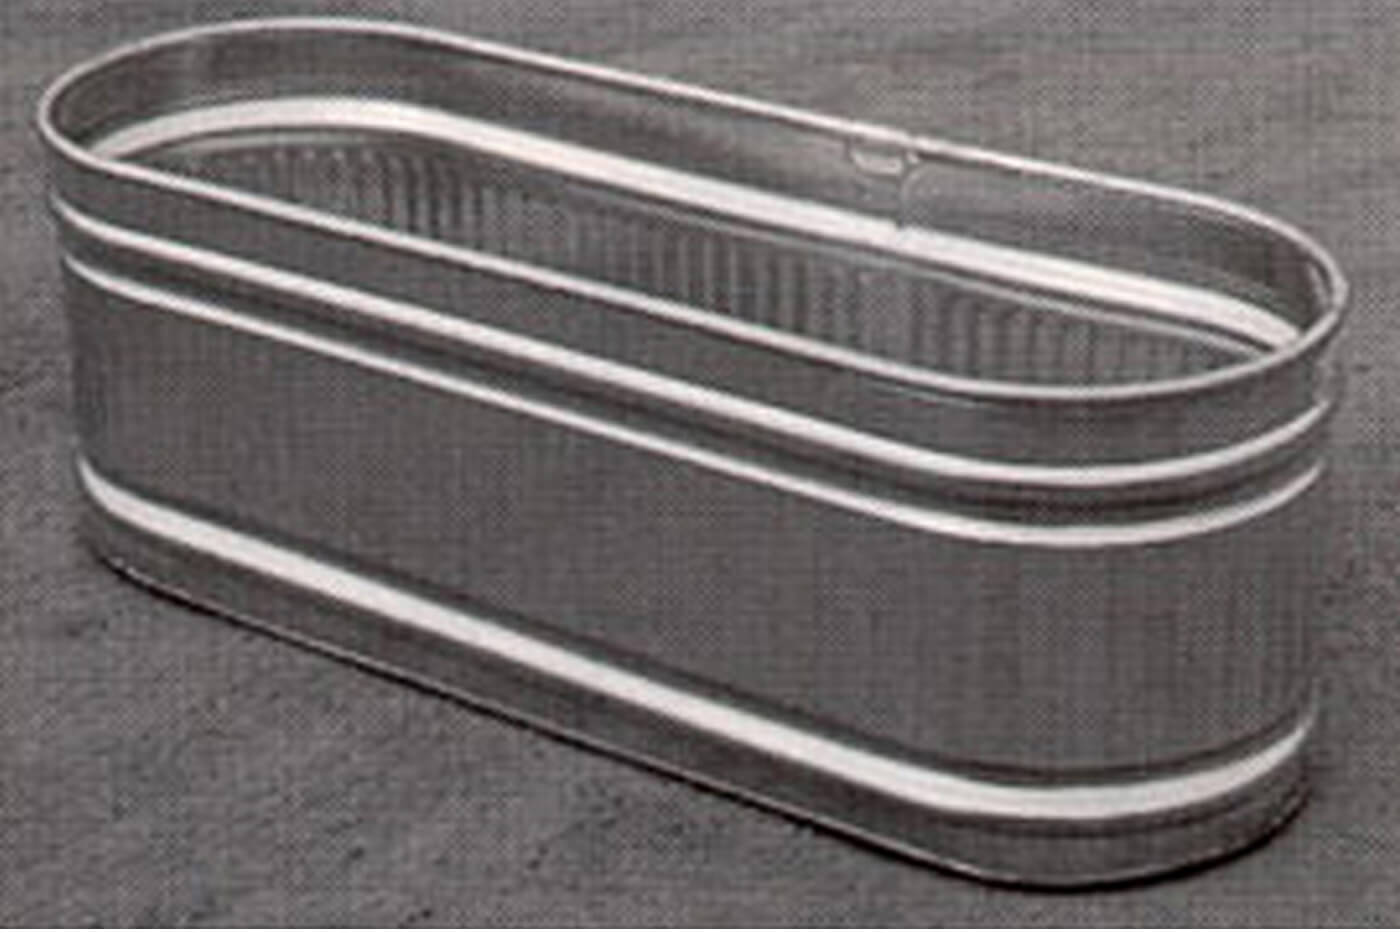 Galvanized Trough from Rona